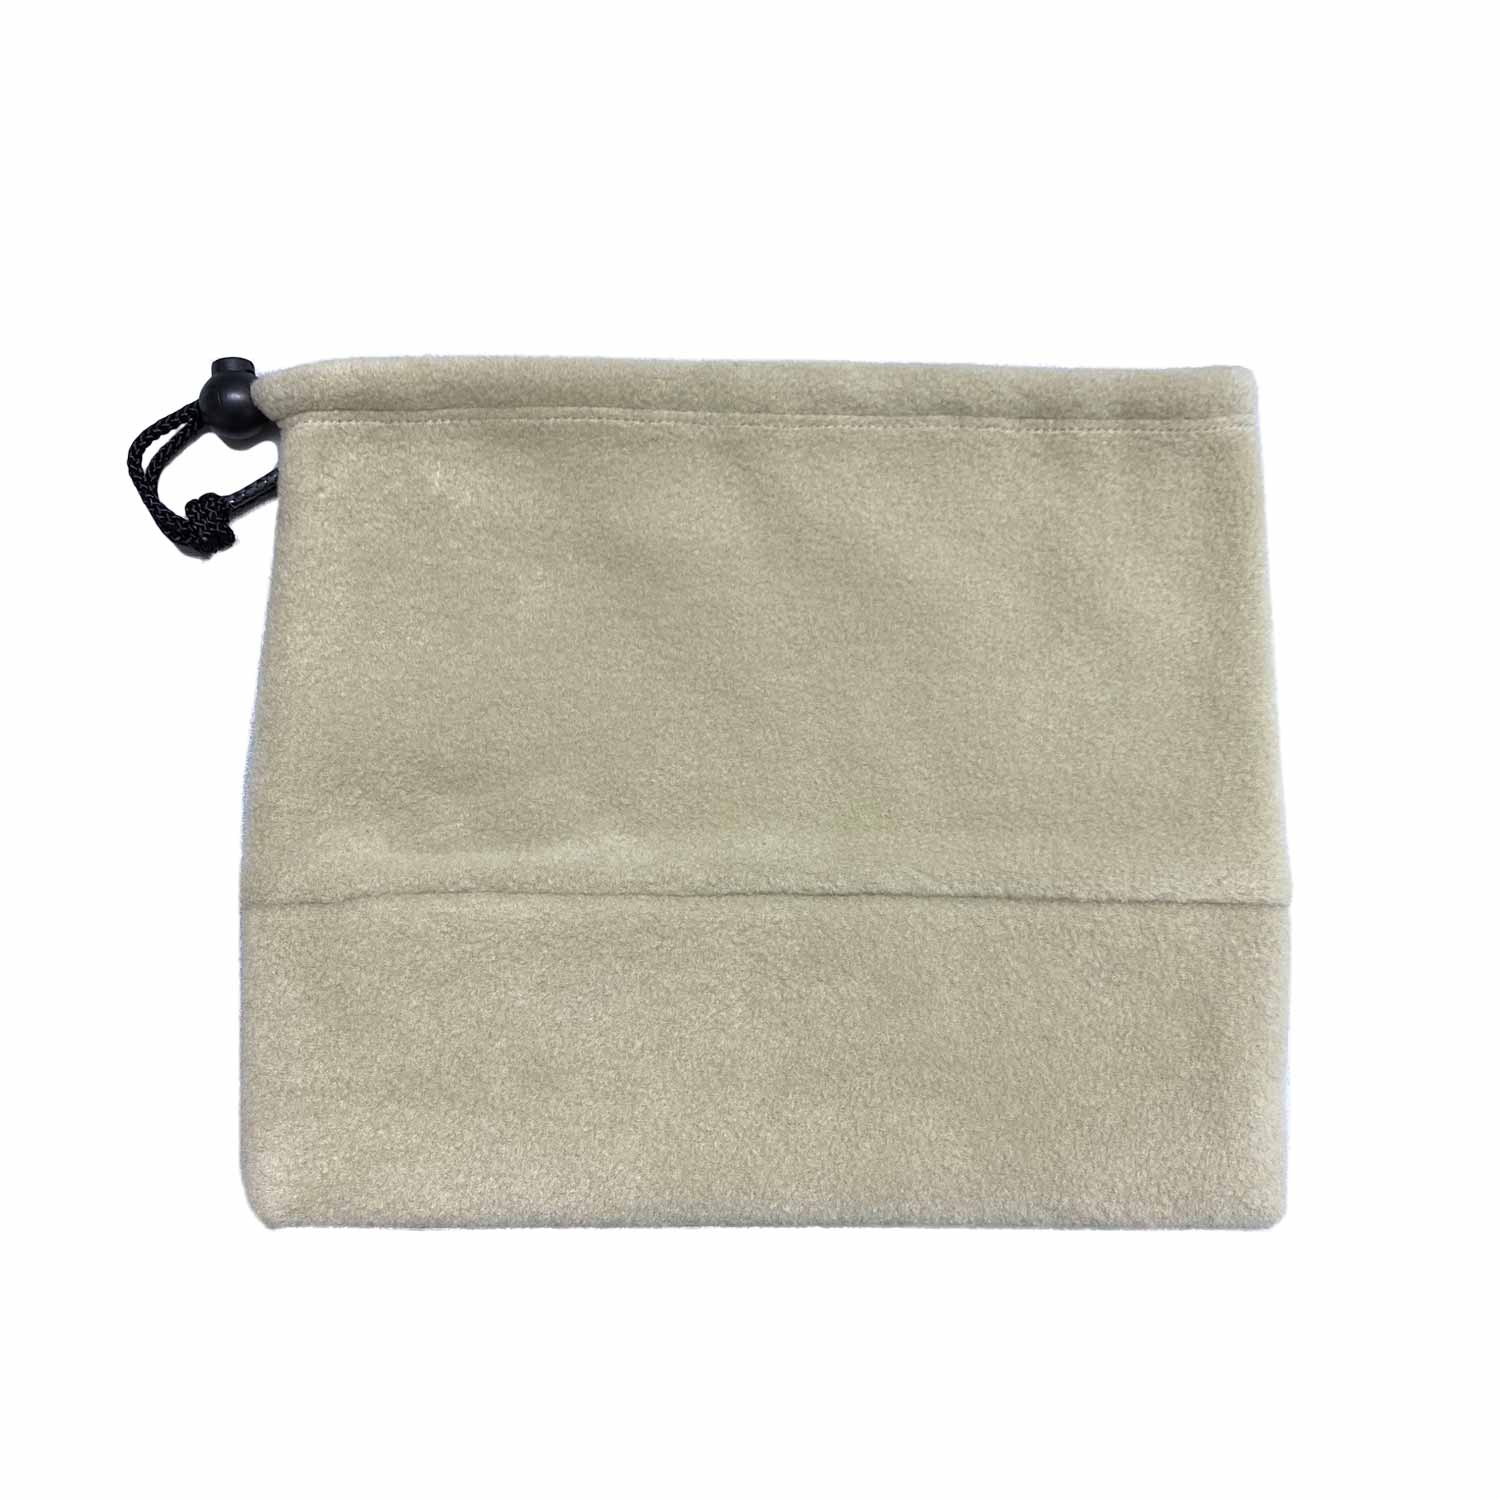 F/B POOPING NECK WARMER - PIED